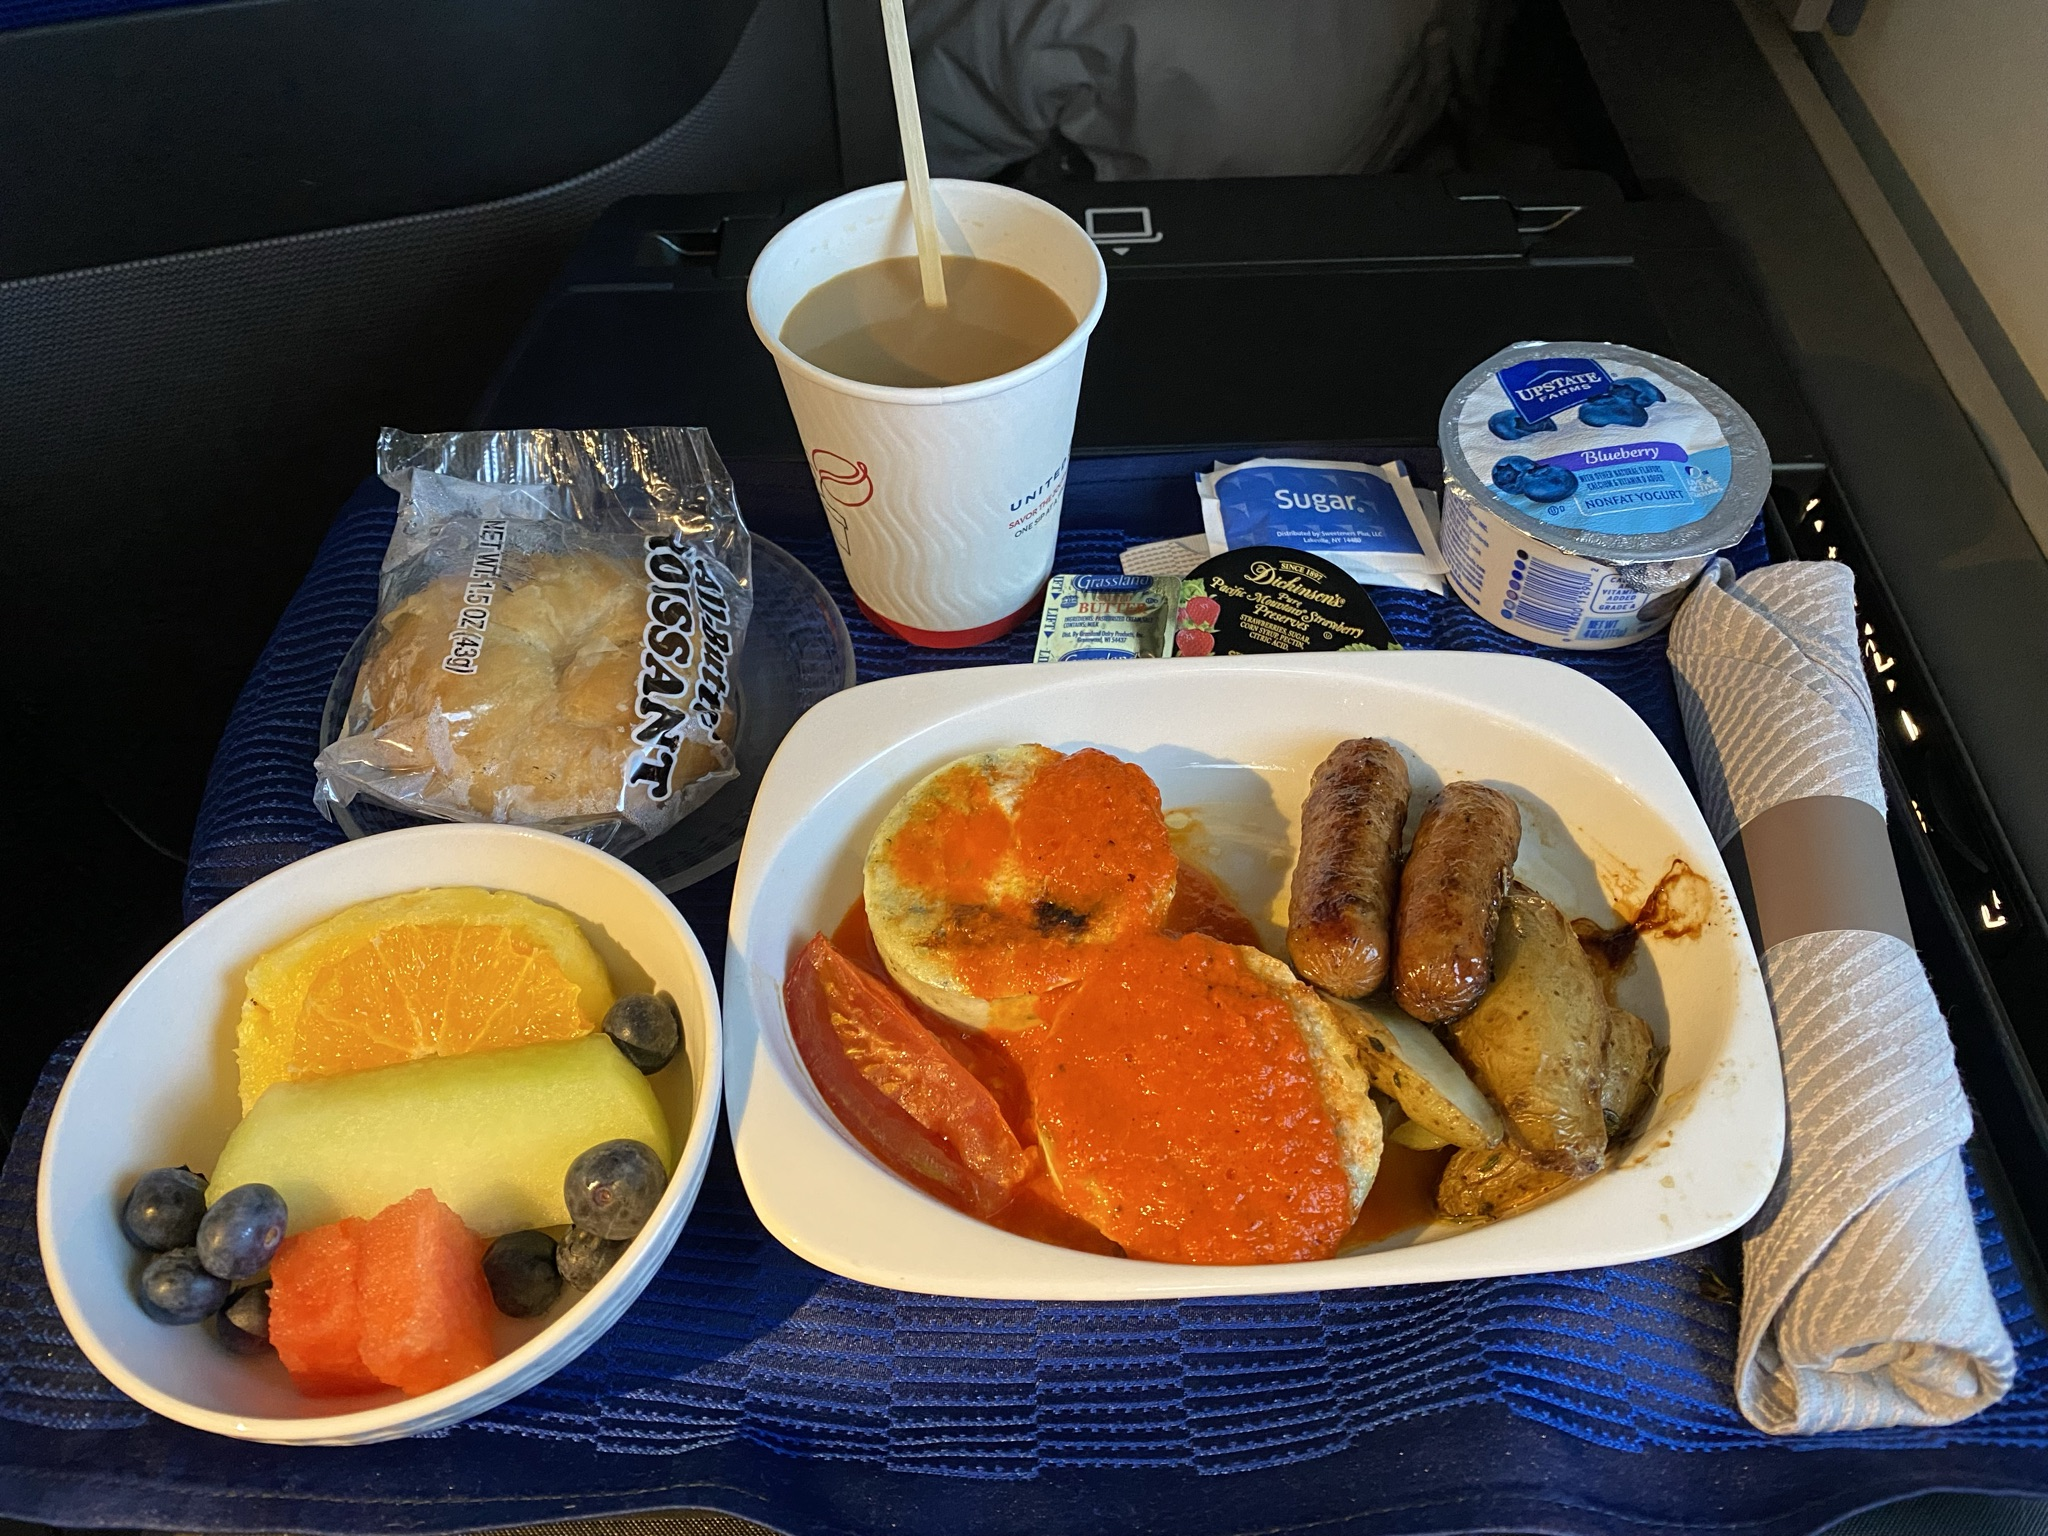 Breakfast in Business class on United's 767-300ER from JFK which consisted of fruit, sausage, eggs and coffee